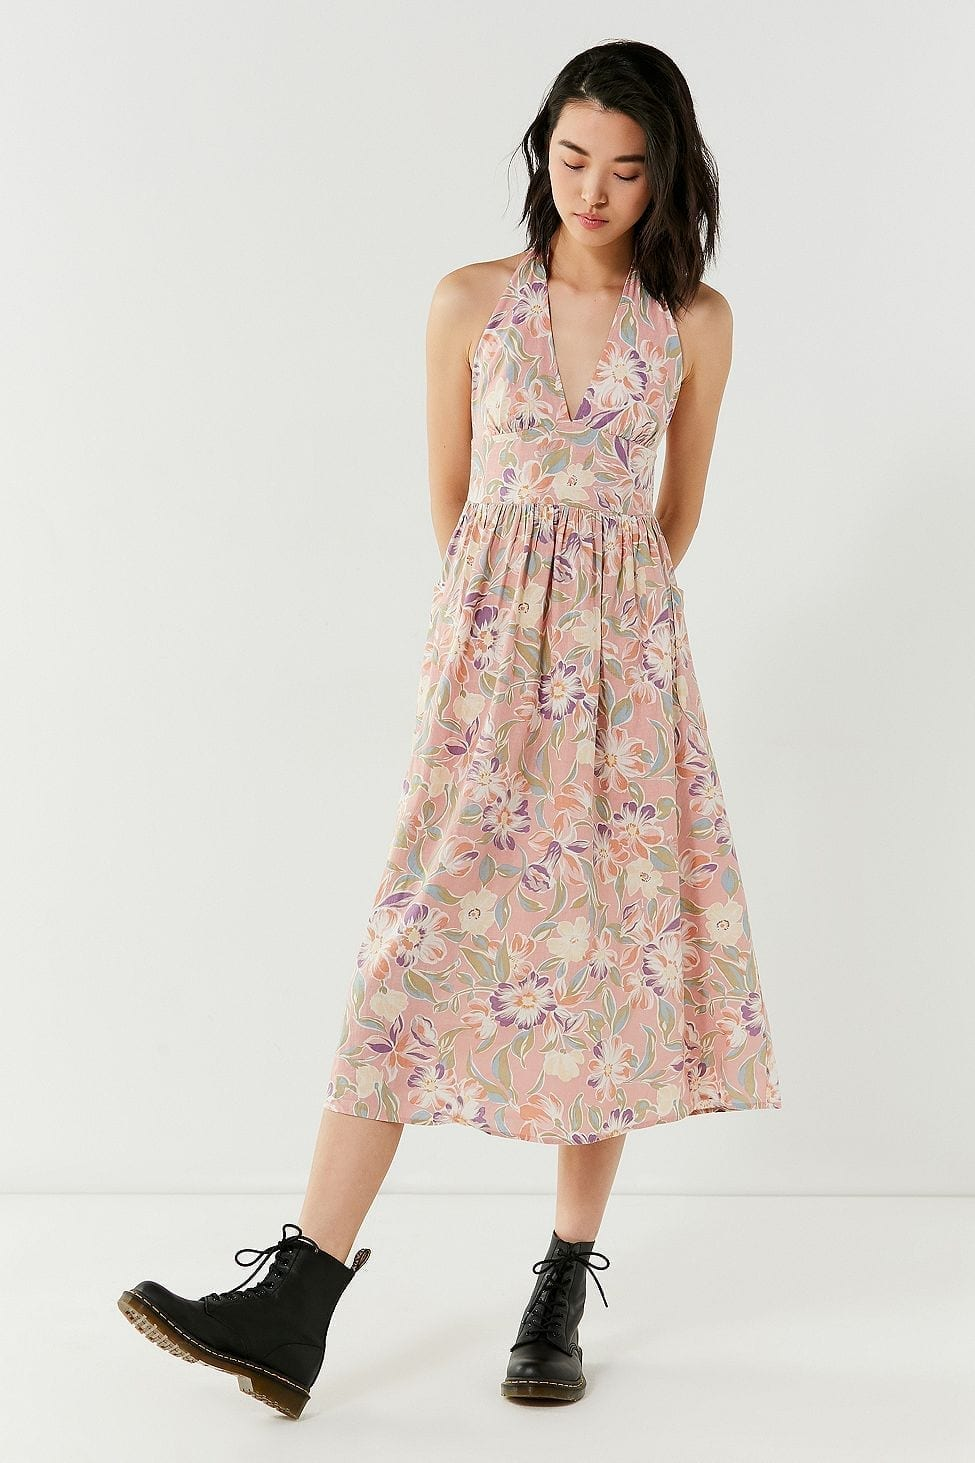 URBAN OUTFITTERS Betsey Jezebel Halter Midi Pink / Floral Printed Dress